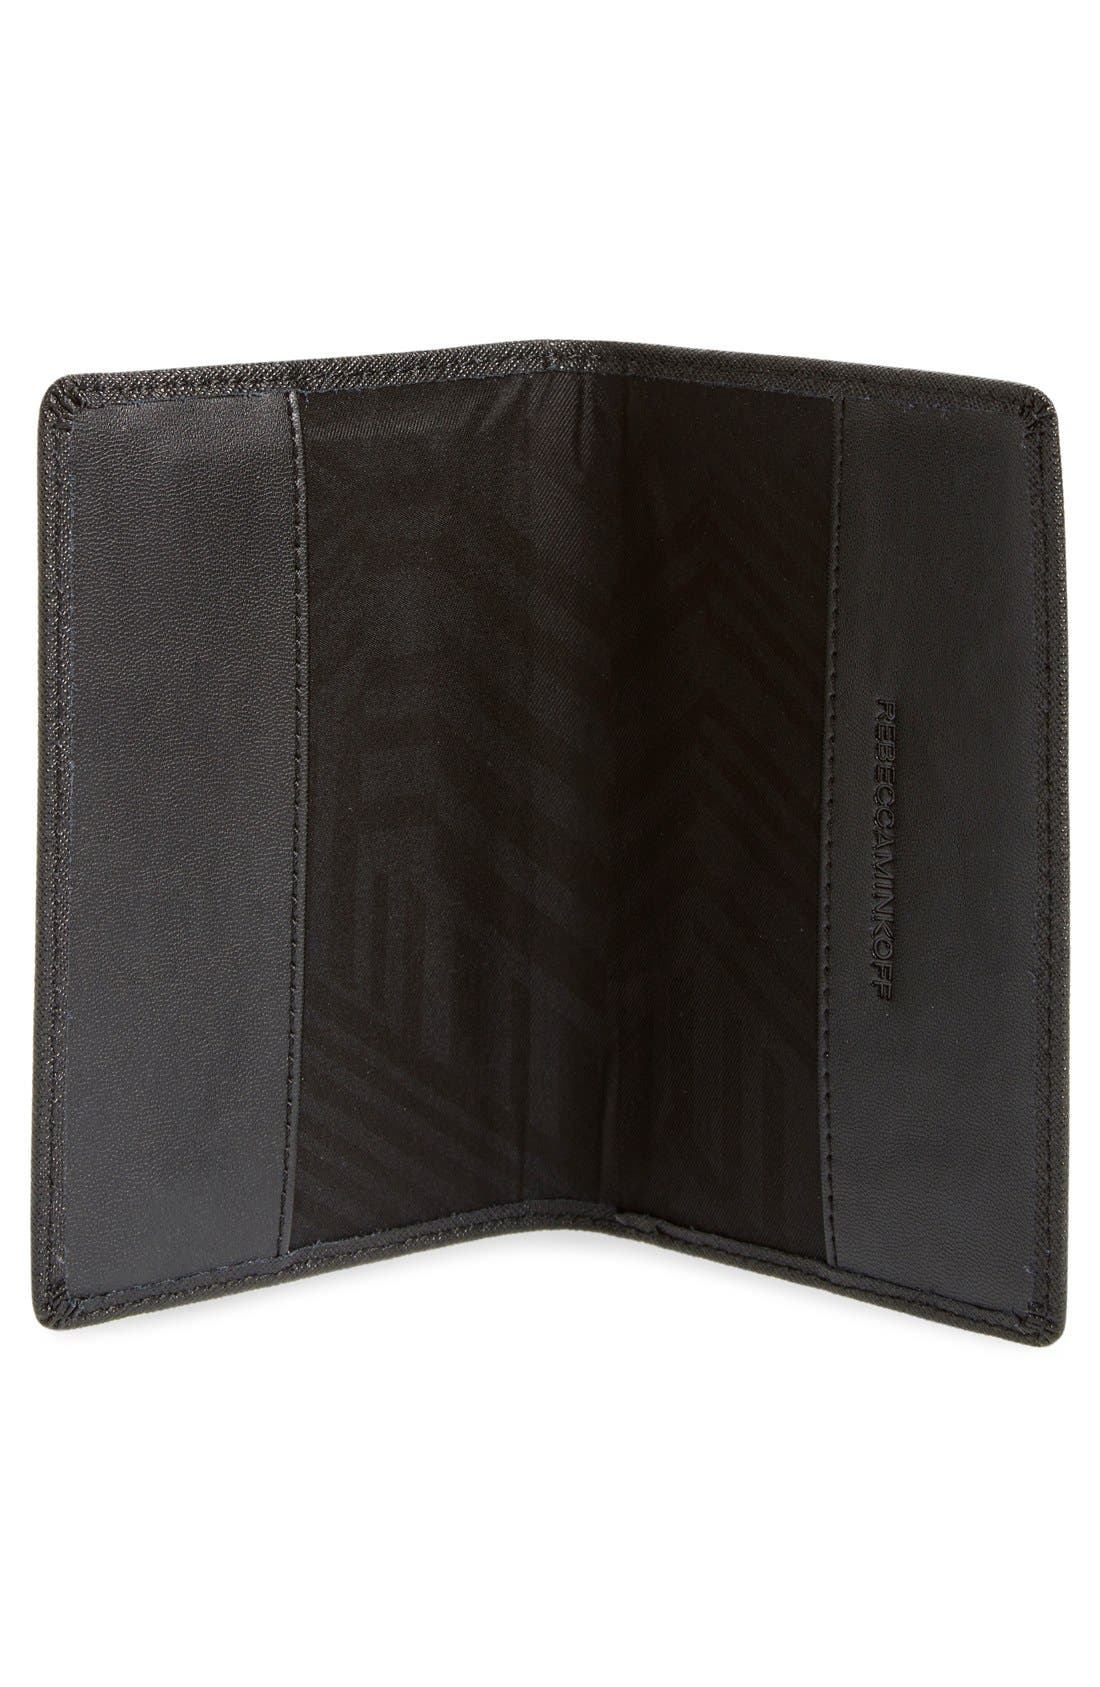 Alternate Image 3  - Rebecca Minkoff Passport Holder